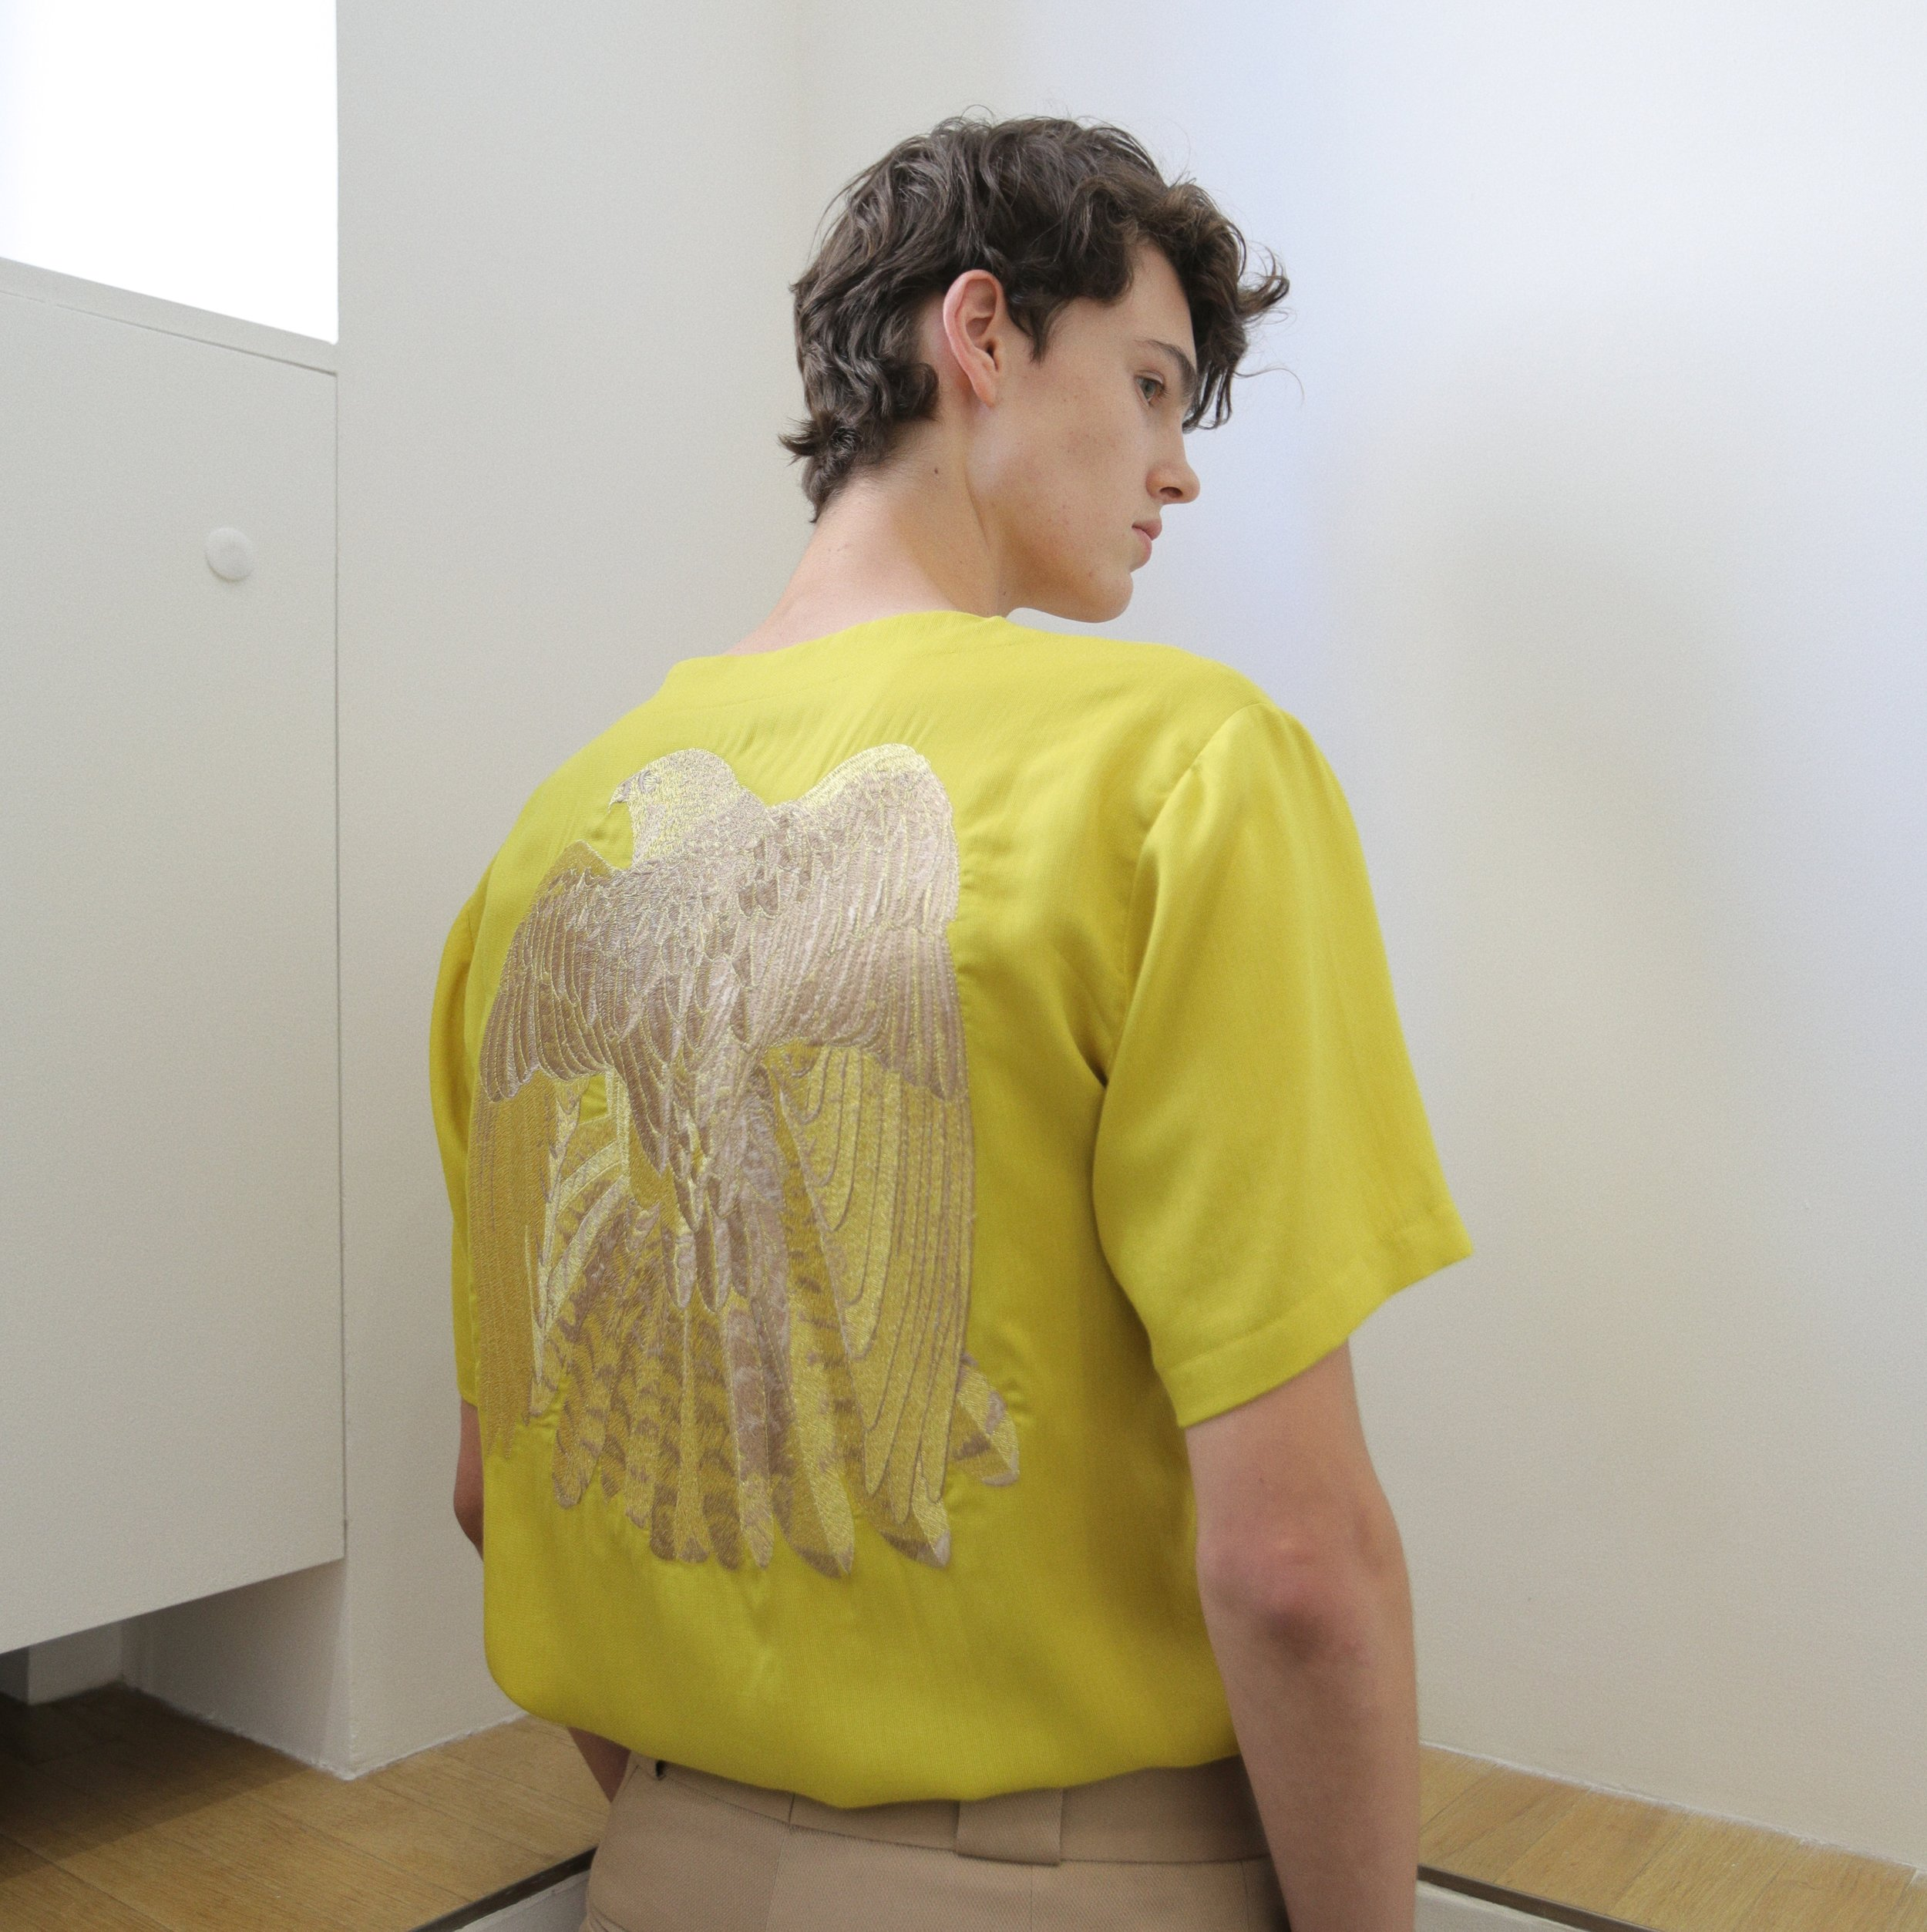 embroidery back yellow tshirt  One available sizes 40 Original Price 285€ | Discount Price 114€ Ref. LCss18m19-f14